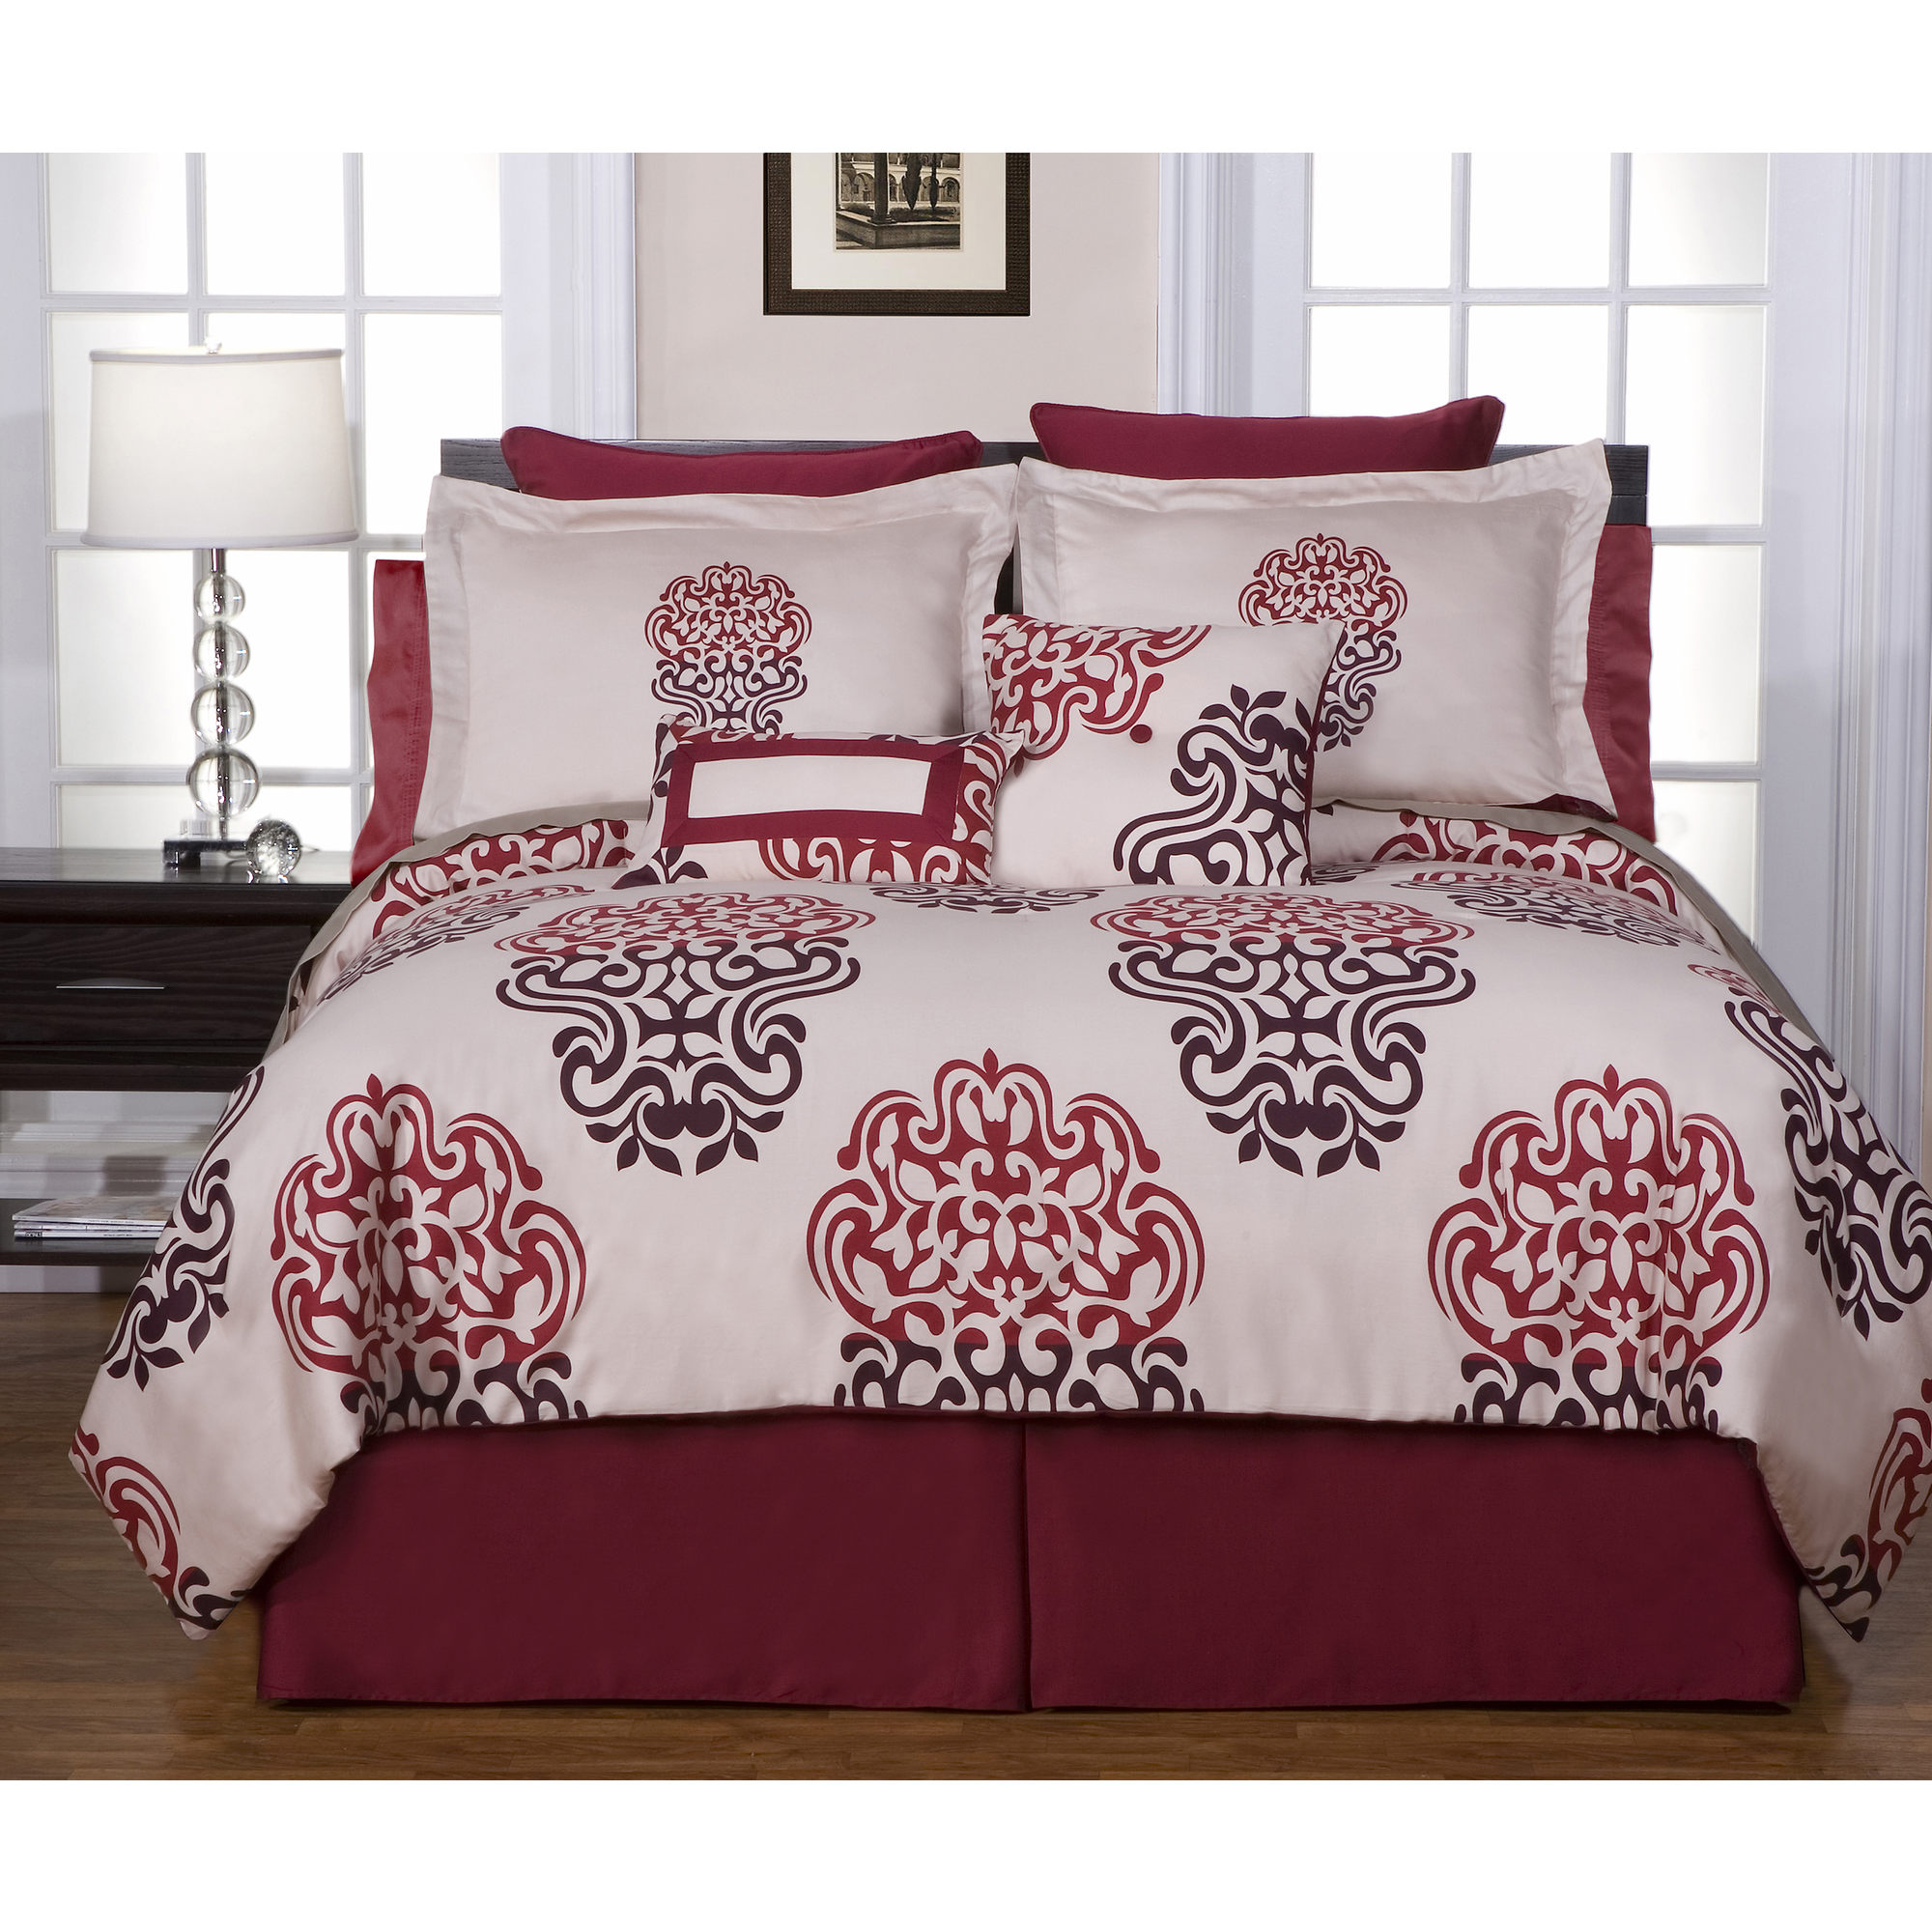 california of on with an images sets ideas curtains sale keep quilt king inspirations cozy clearance bedroom bedding size outstanding full walmart amazing your kmart